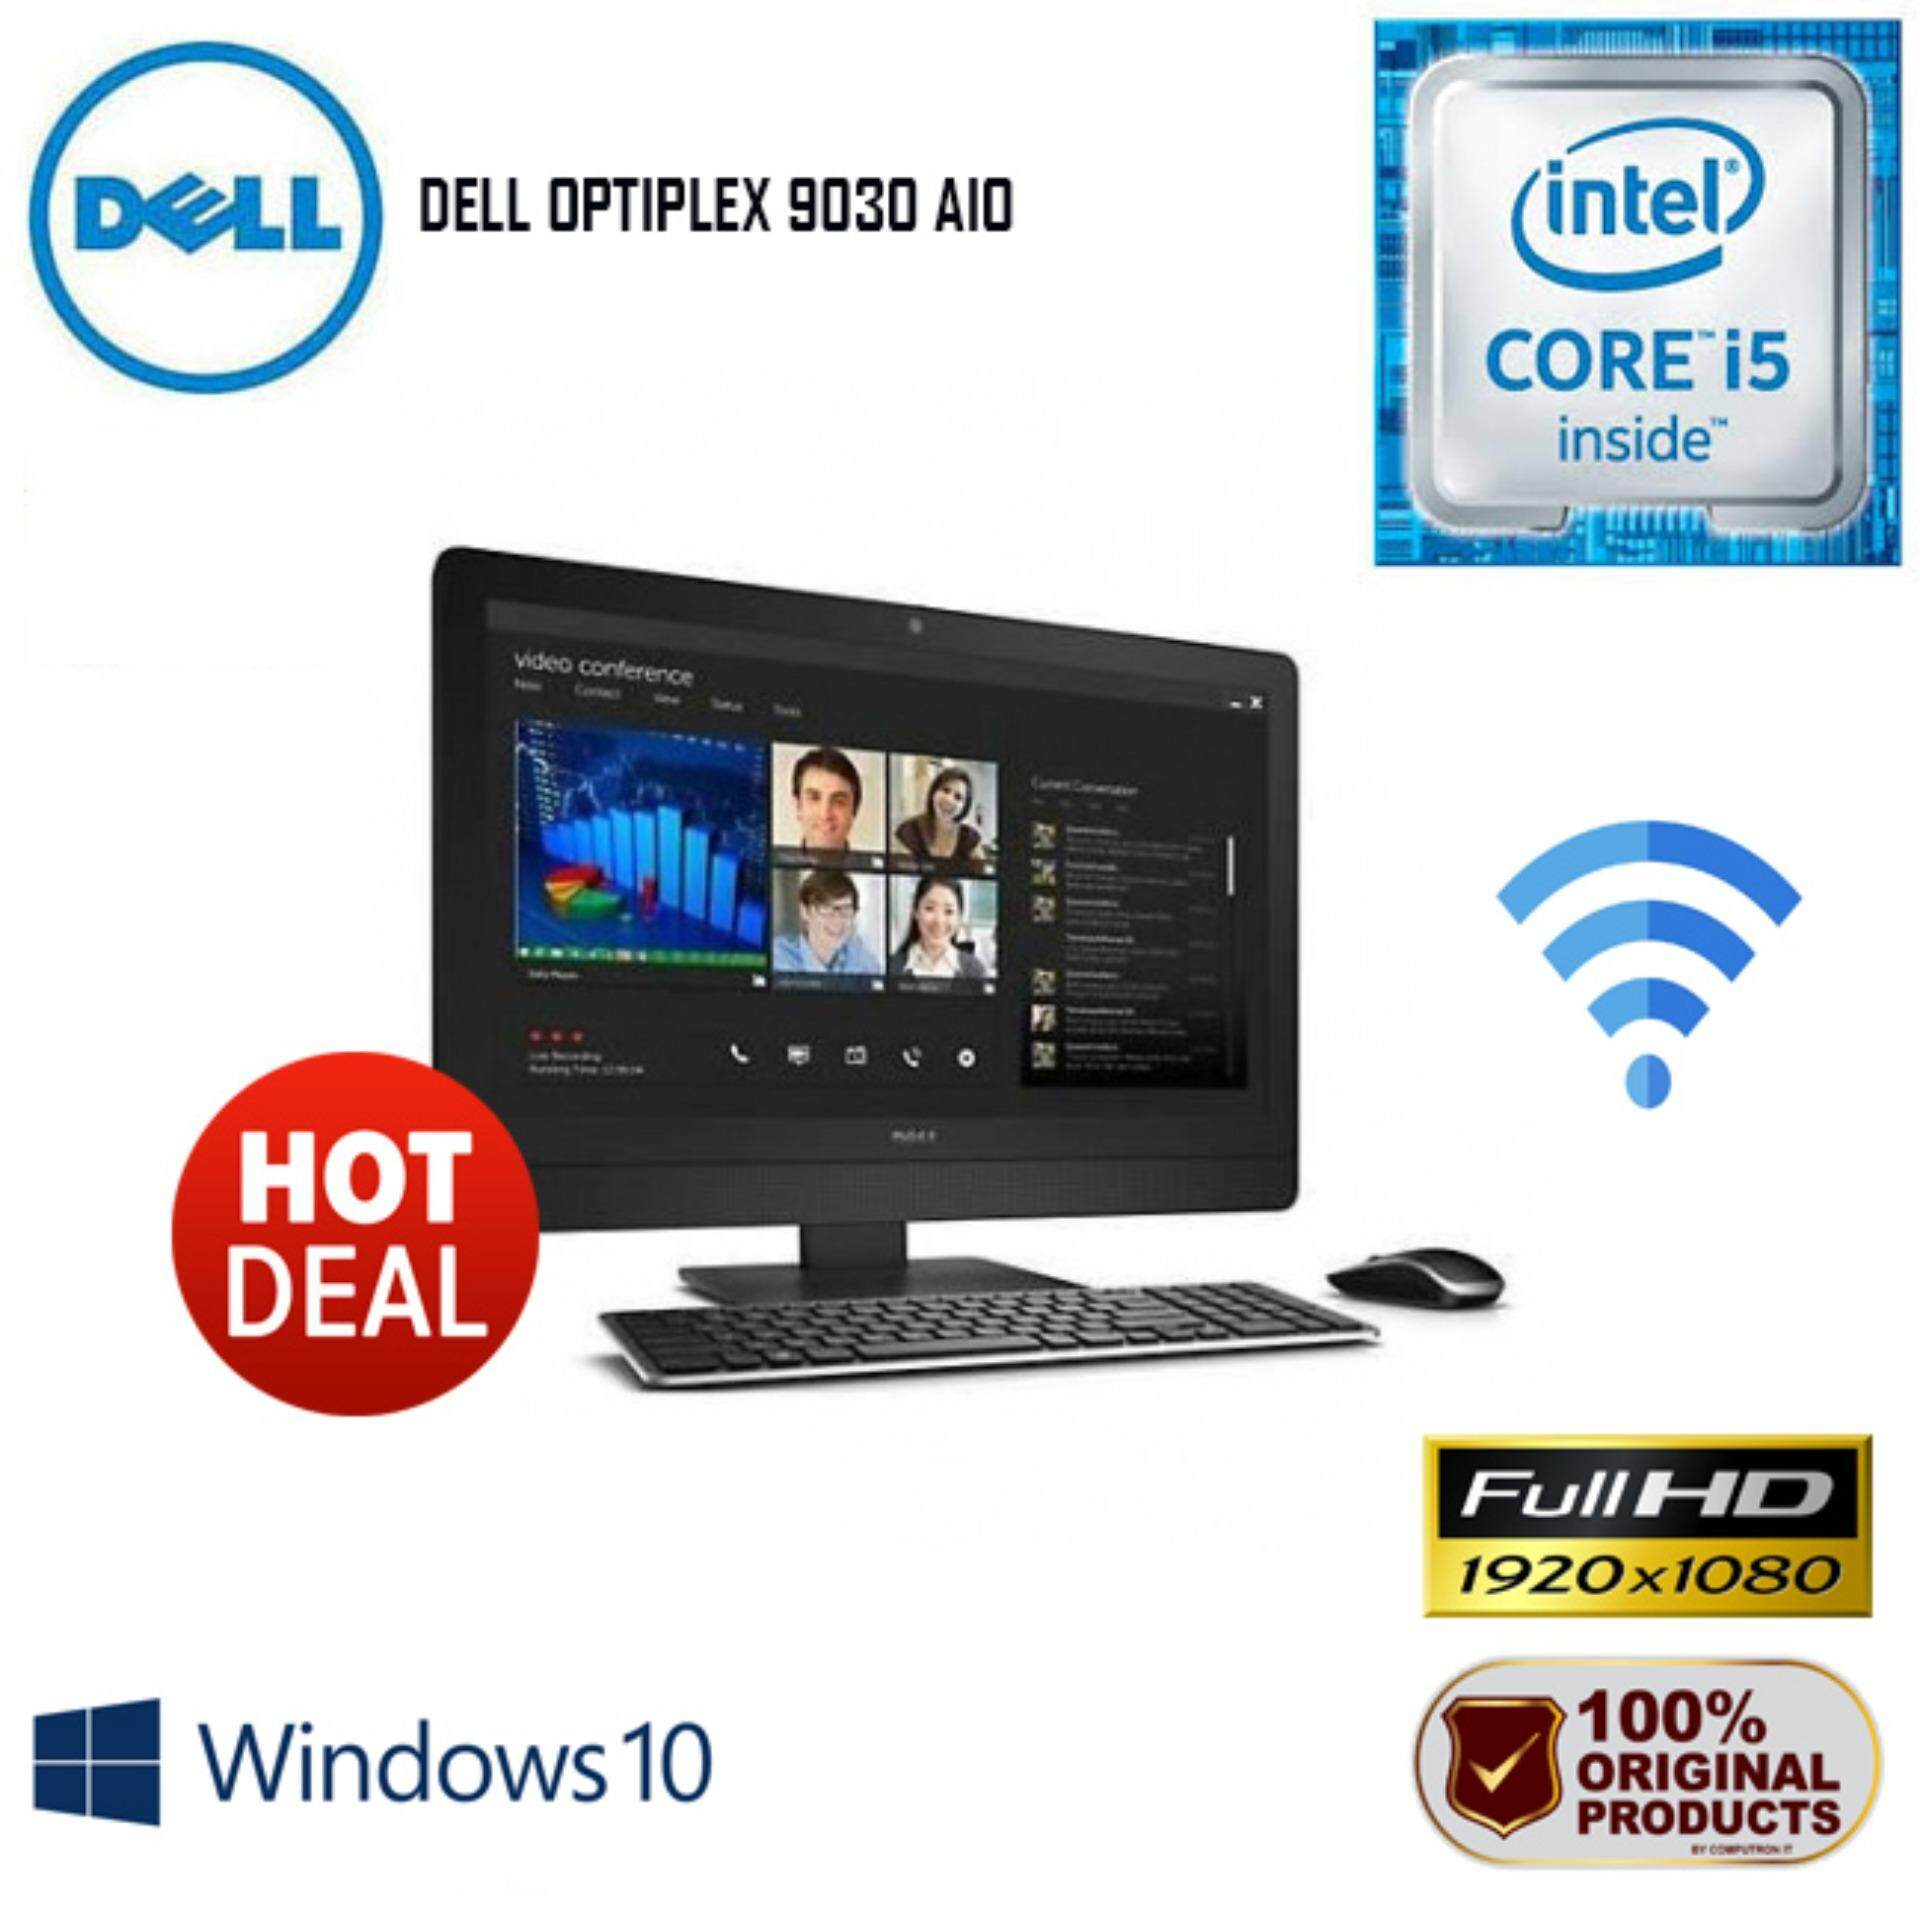 DELL OPTIPLEX 9030 [23 INCH FHD] ALL IN ONE PC [SLIM]